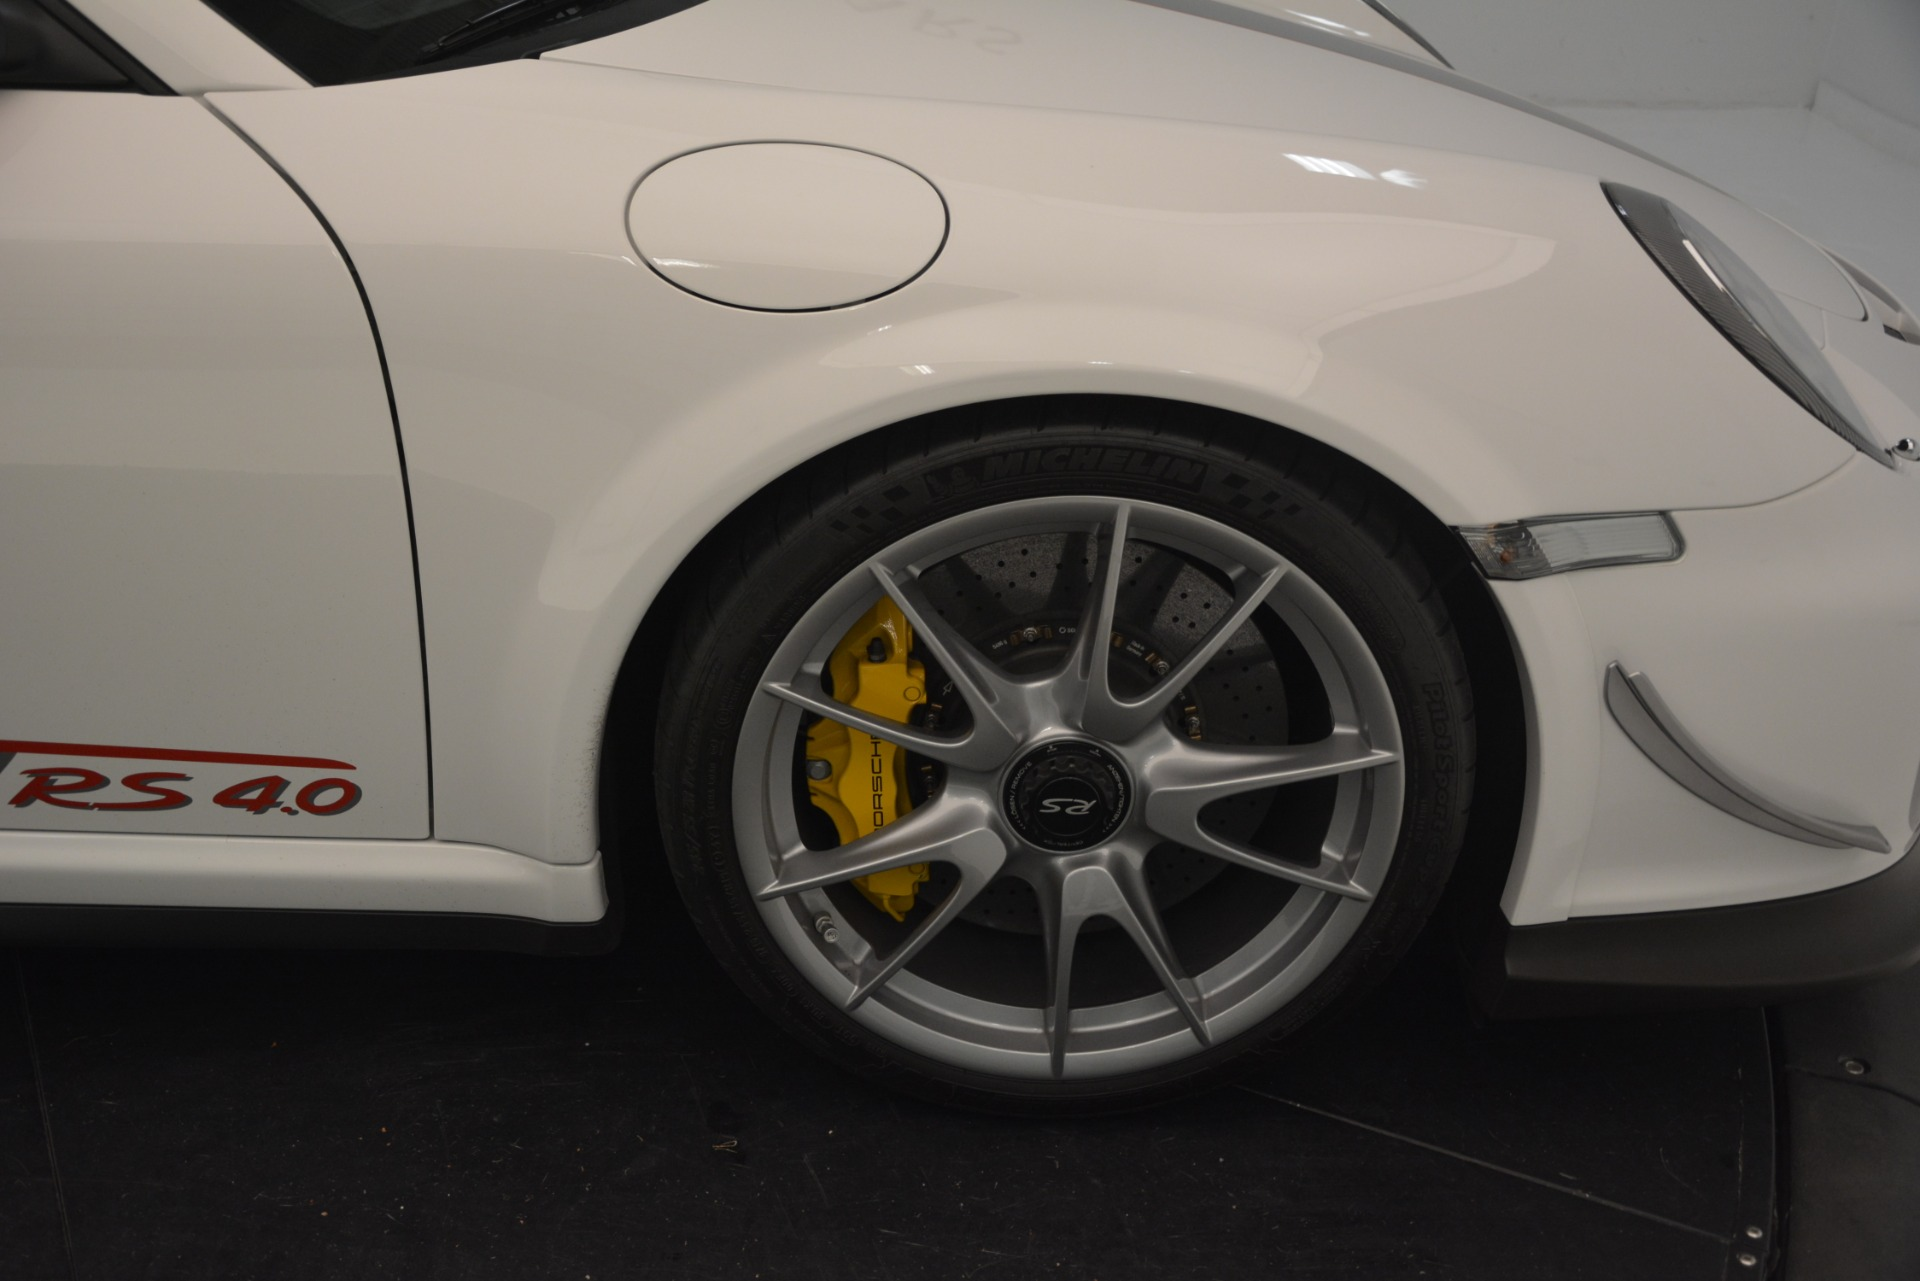 Used 2011 Porsche 911 GT3 RS 4.0 For Sale In Greenwich, CT 3188_p25